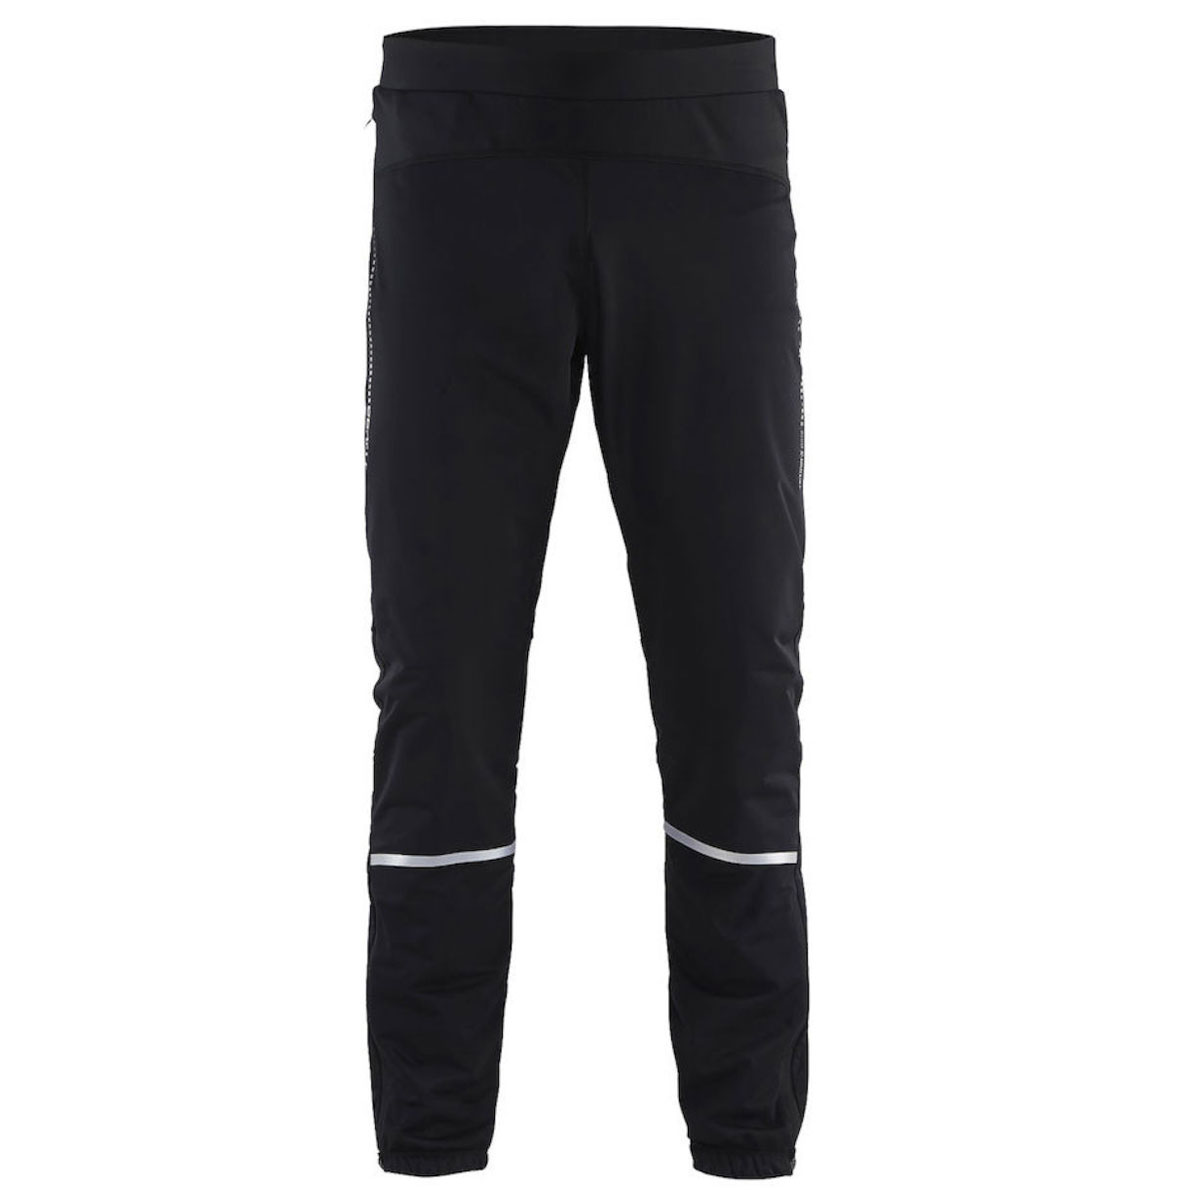 Pantaloni Craft Essential Winter - Nero